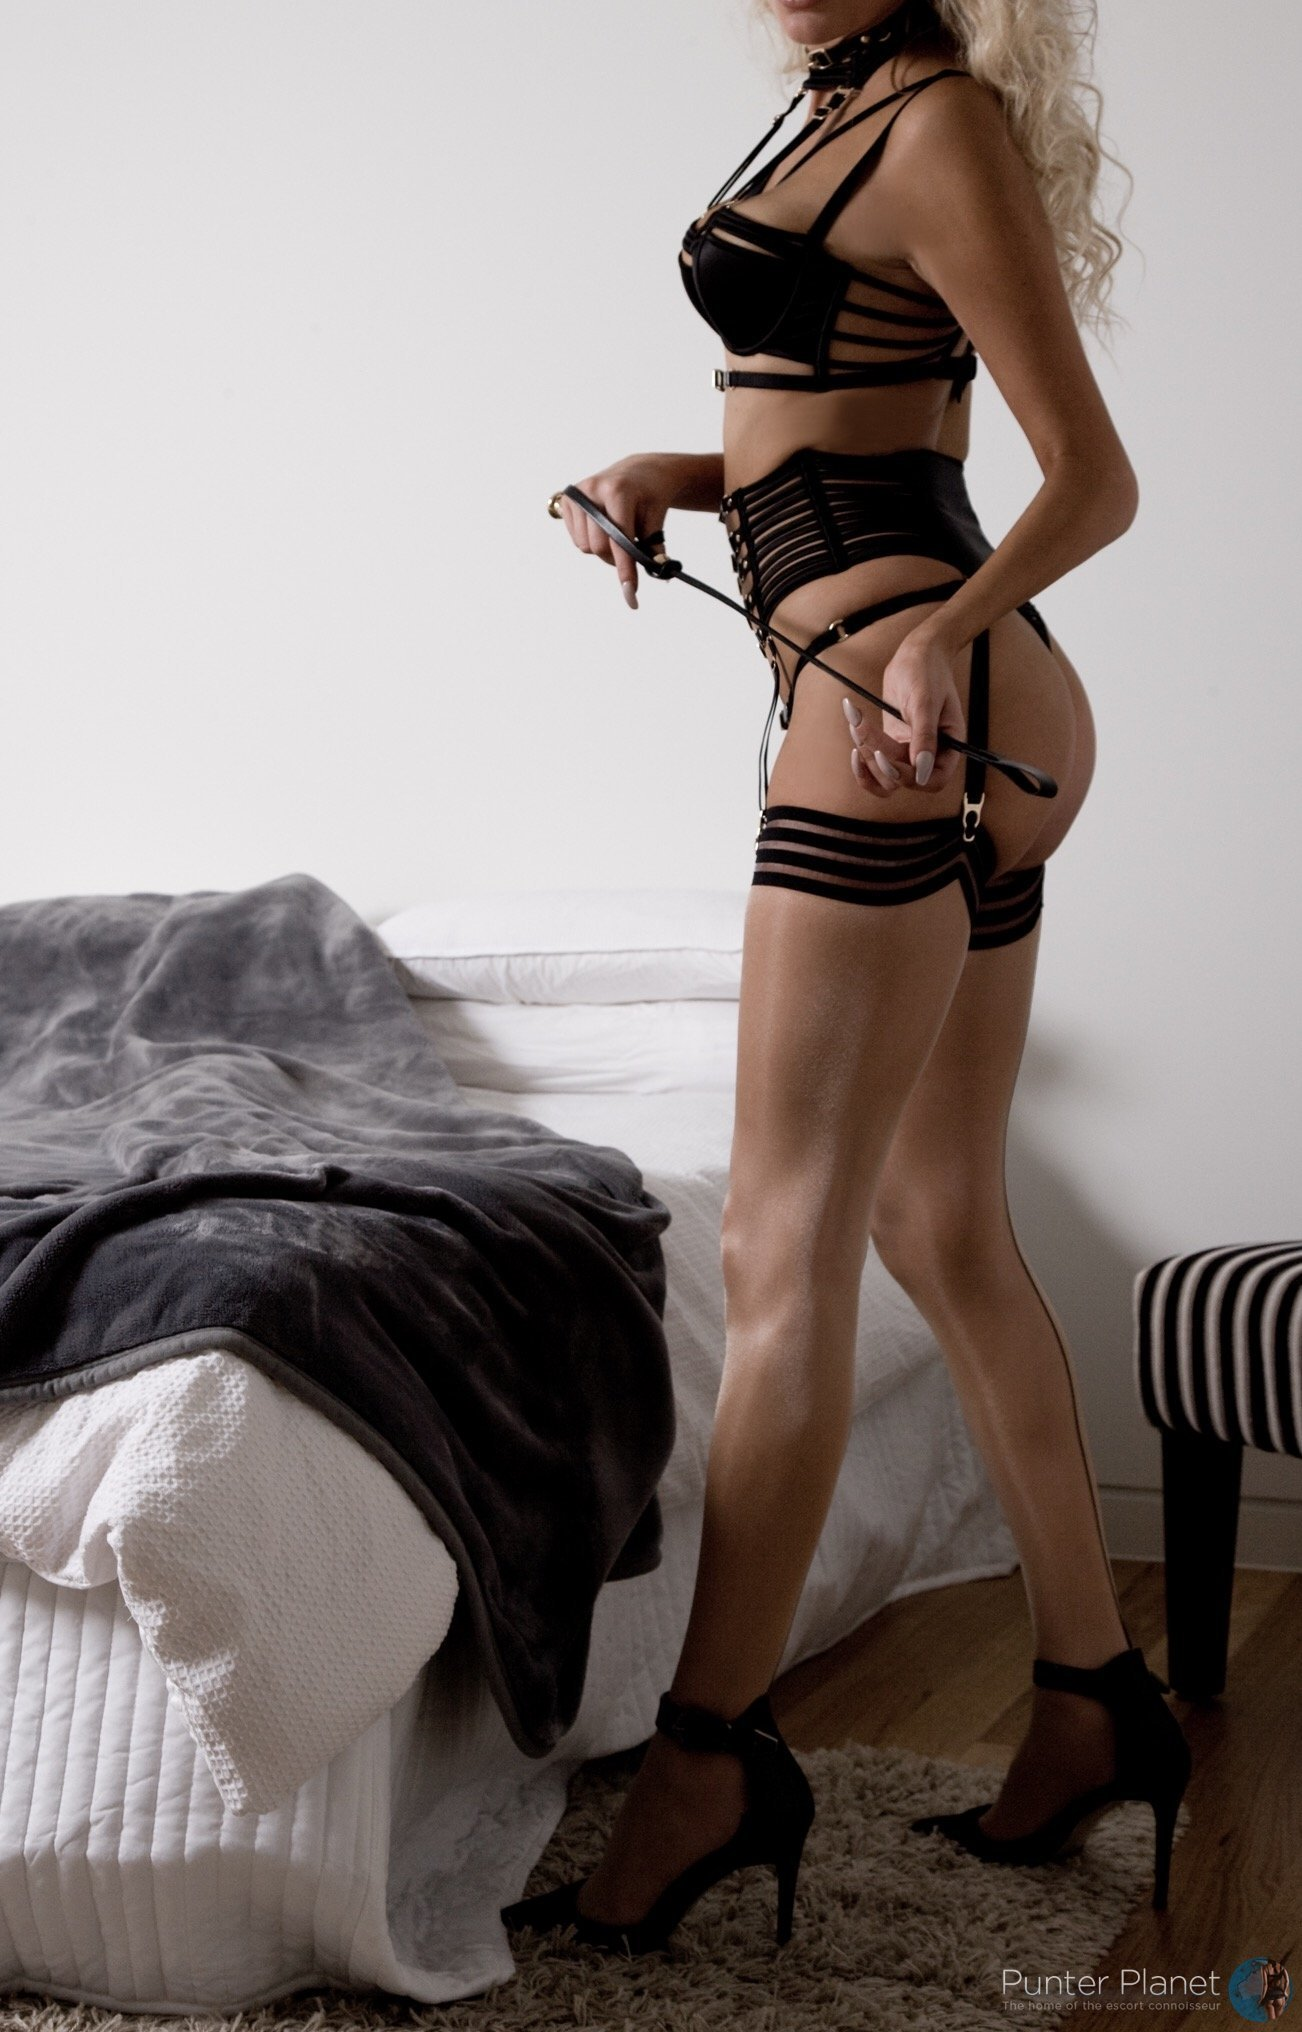 Heidi is our blonde, fit and beach side girl! She's one of mature escorts, 36, a size 8 and a great sense of humour.